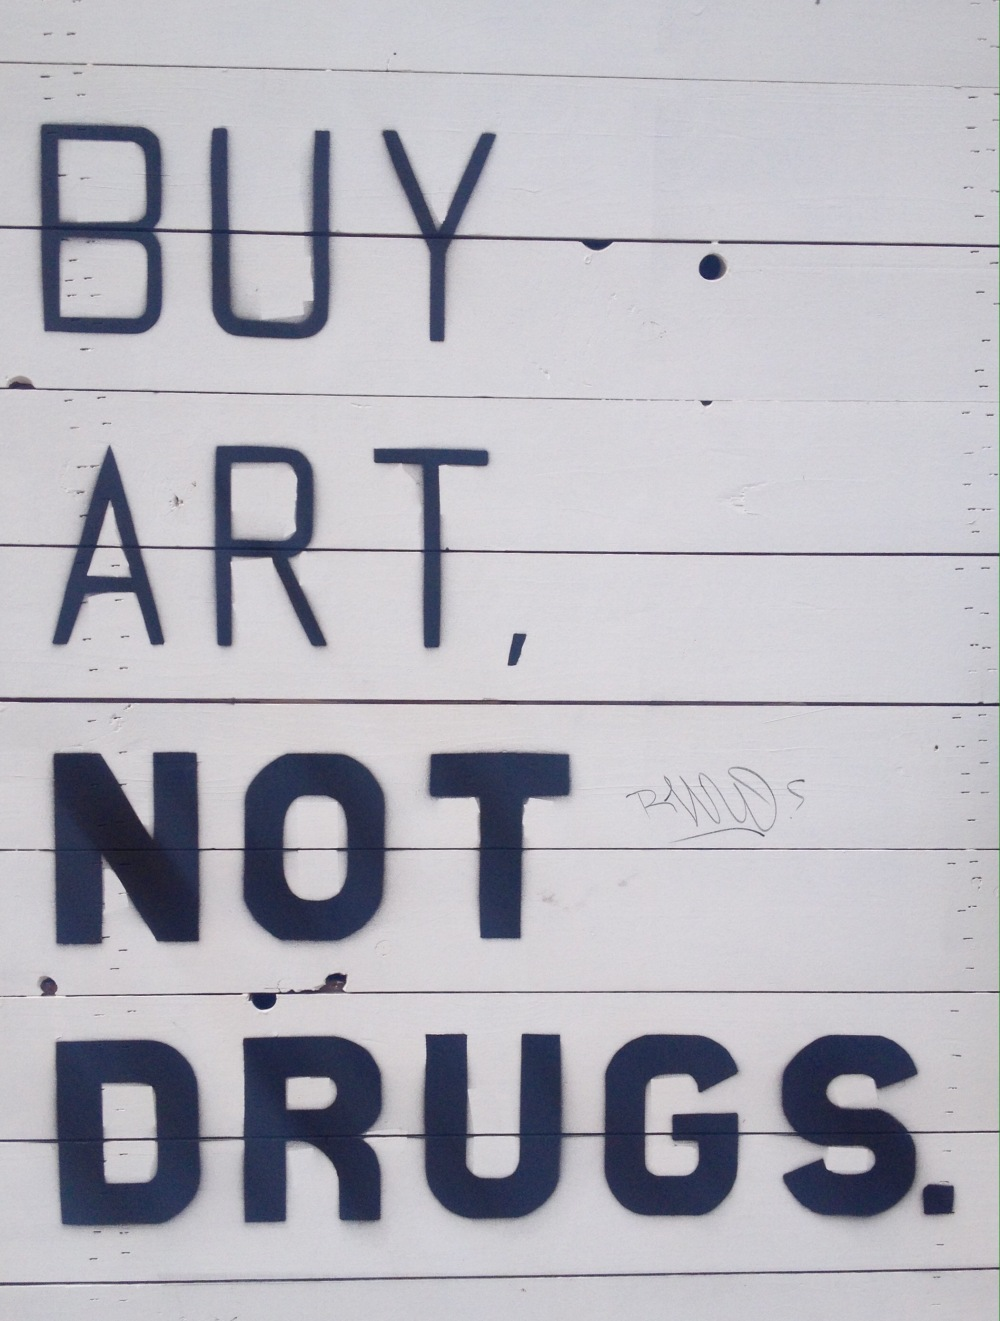 Buy #Art, NOT #Drugs - #Creative #StreetArt - be artist be art magazine